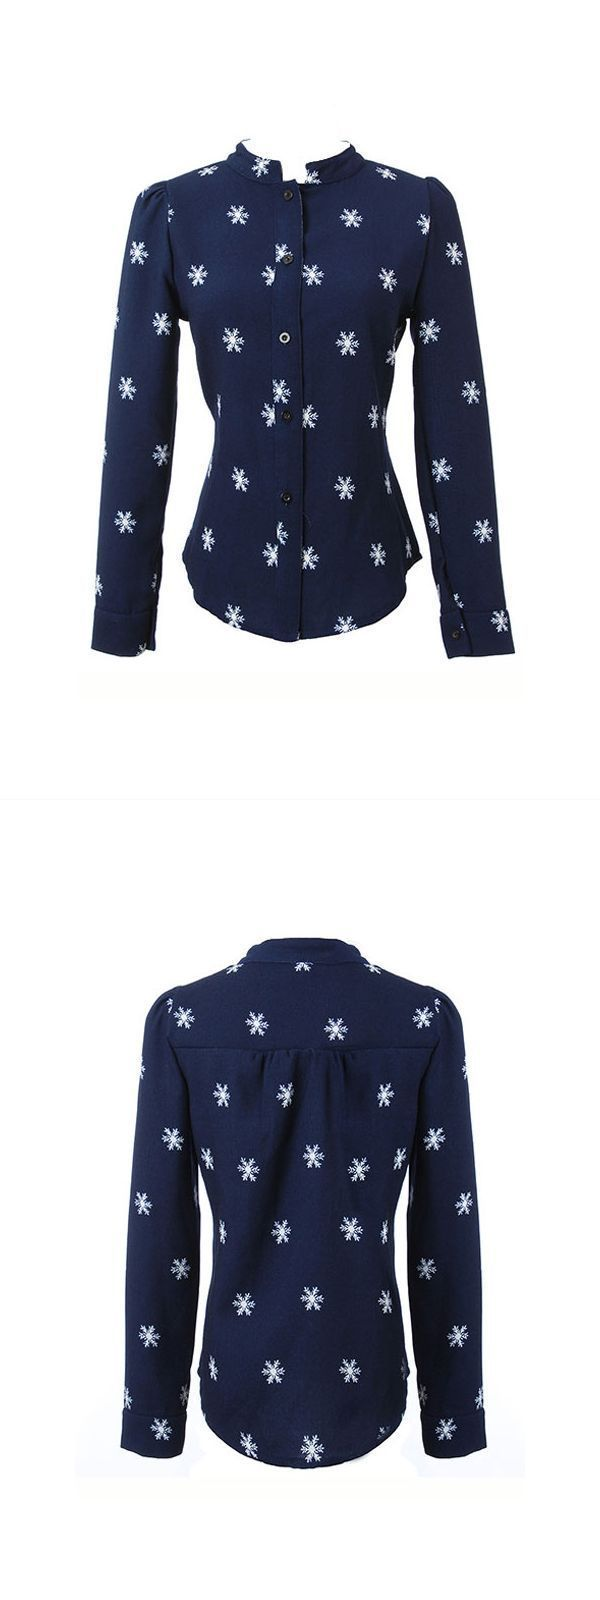 Blouse woman hot photos long sleeve stand collar snow print casual blouse #target #womens #blouses #womens #blouses #online #shopping #womens #rayon #blouses #womens #shirts #and #blouses #uk